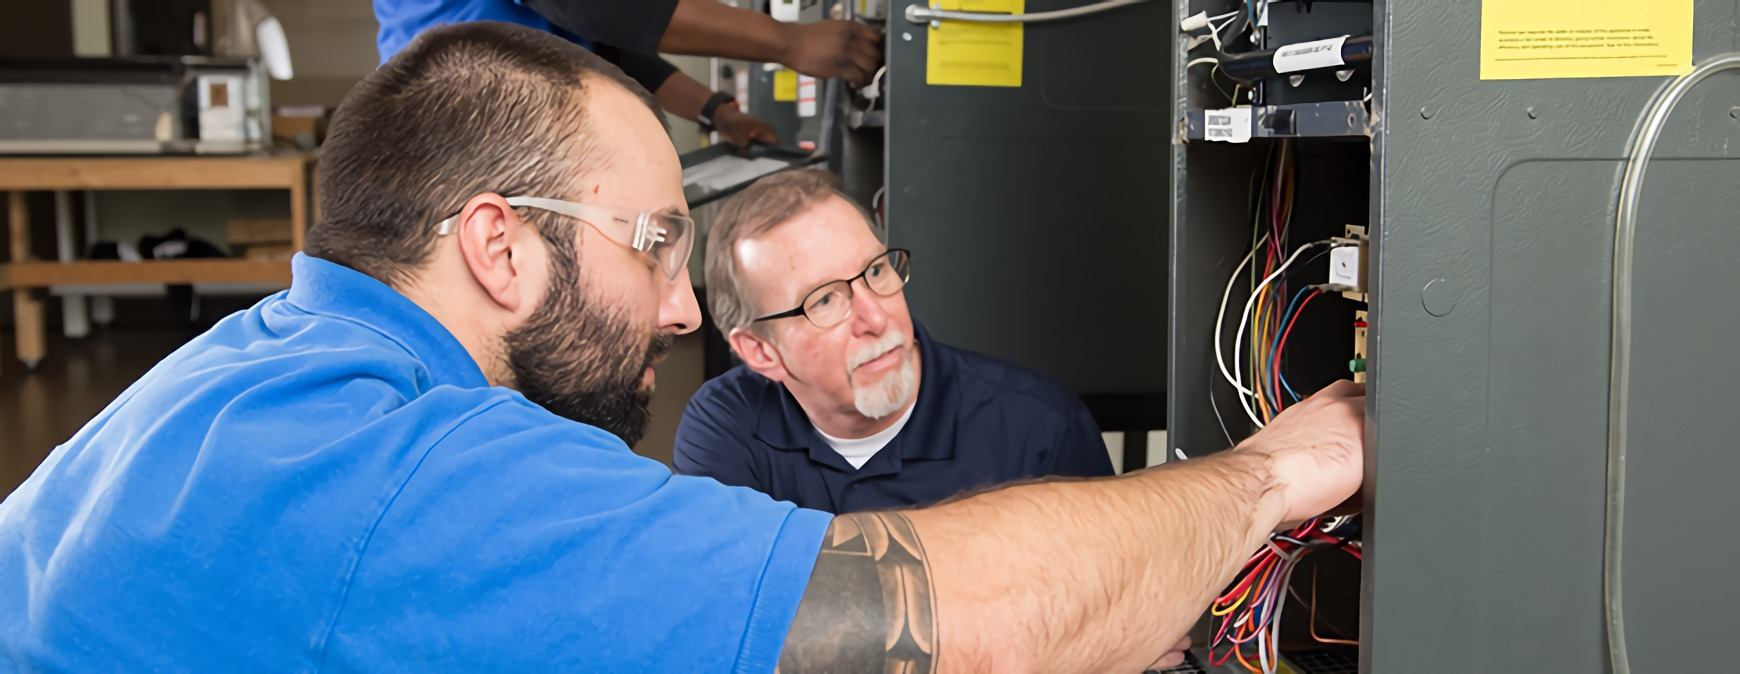 electrician student learning from instructor